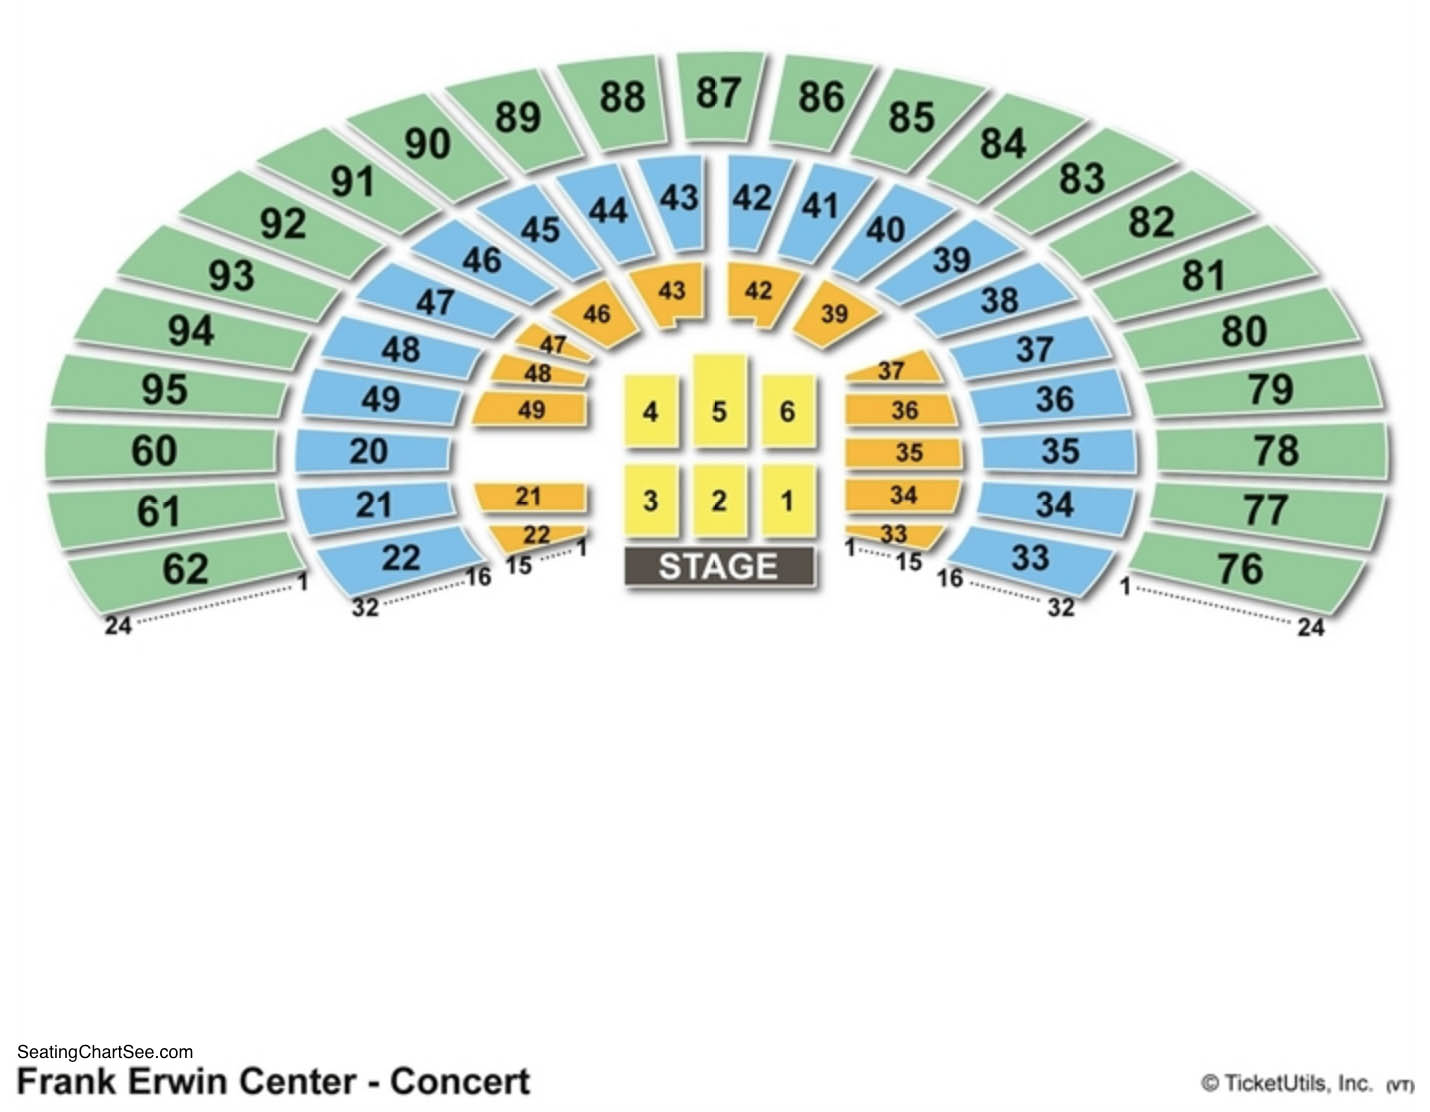 Frank Erwin Center Seating Charts Games Answers Cheats